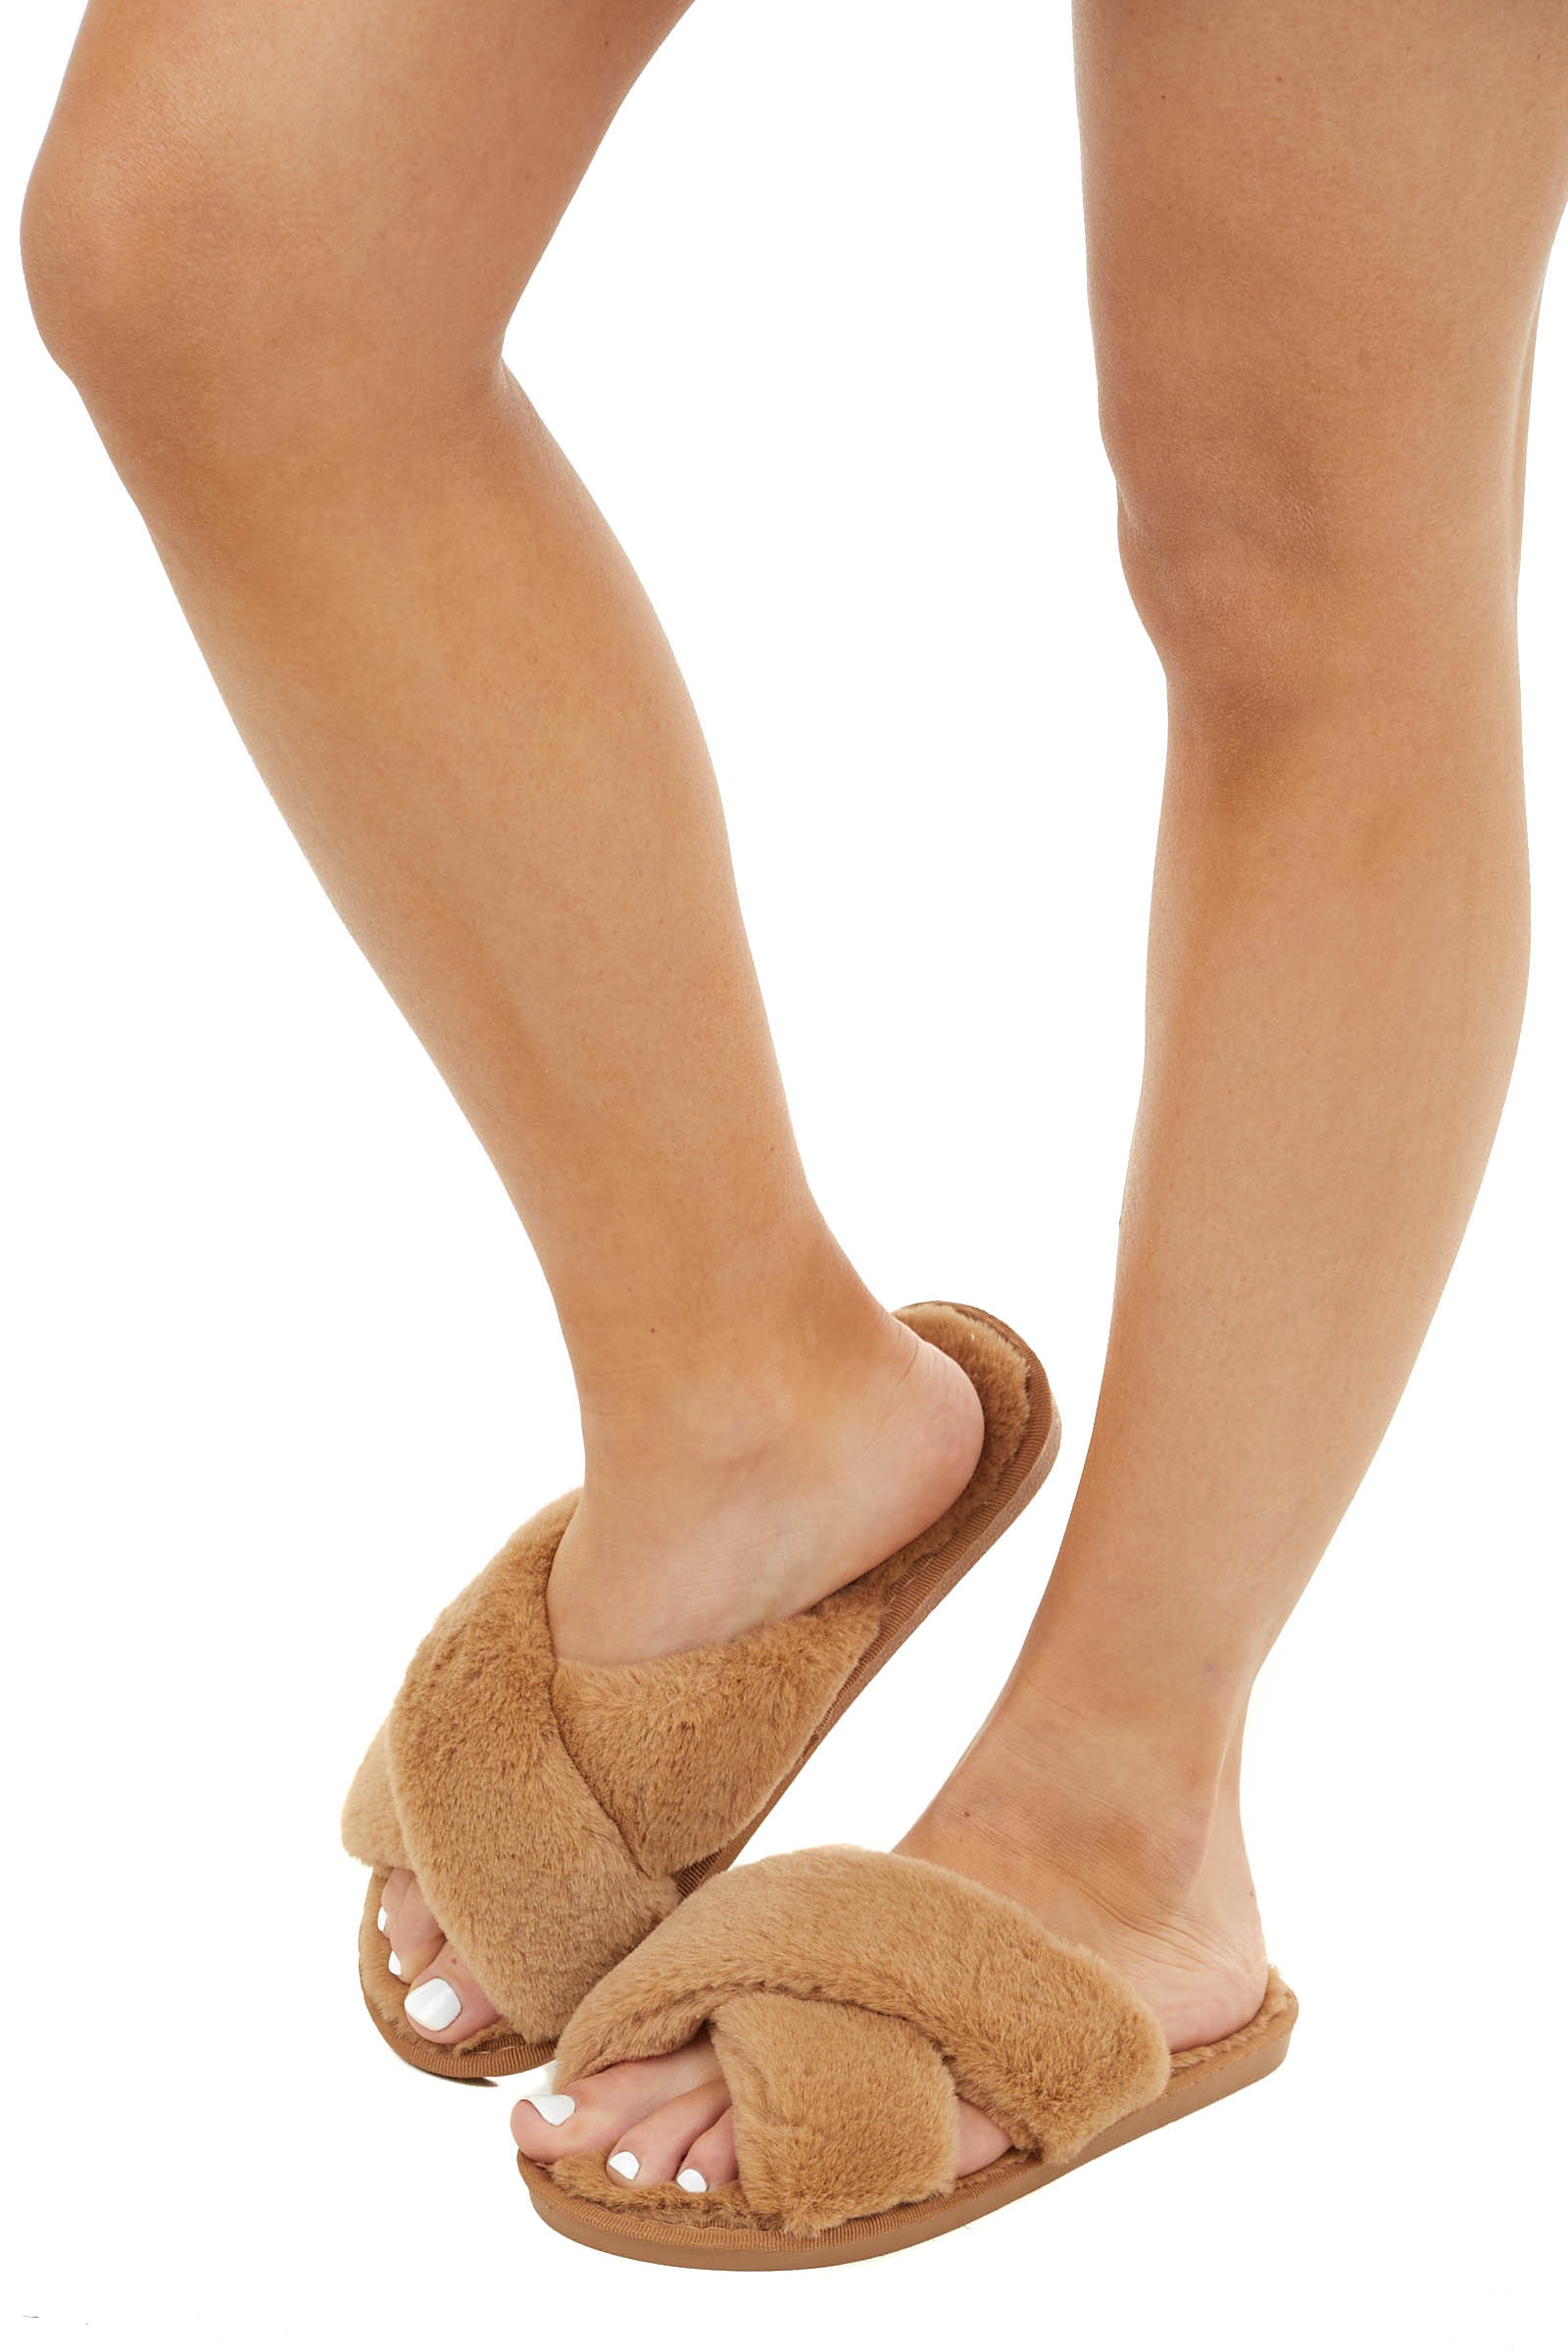 Camel Super Soft Fuzzy Slippers with Criss Cross Straps